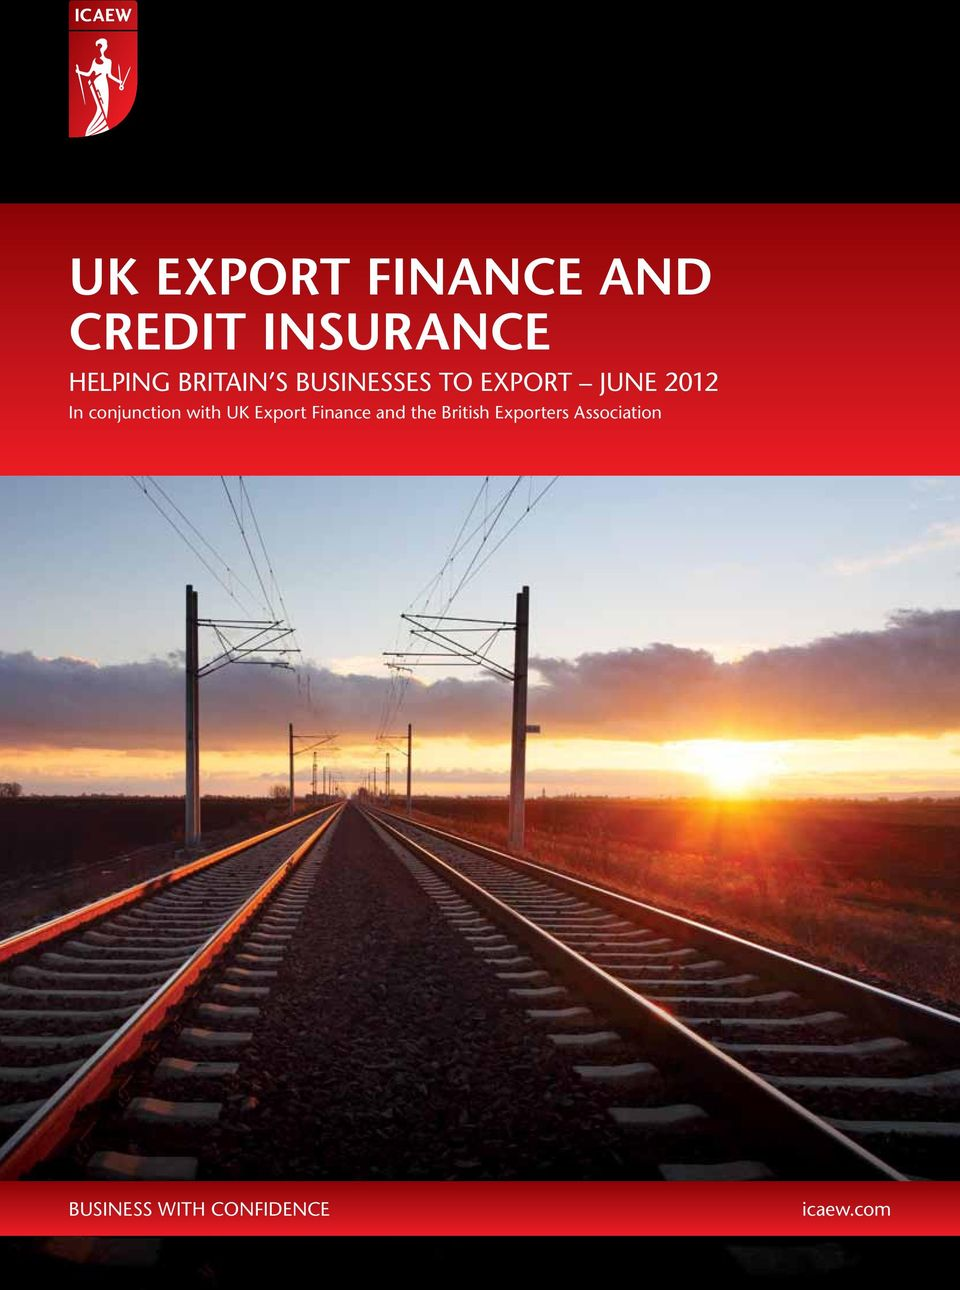 conjunction with UK Export Finance and the